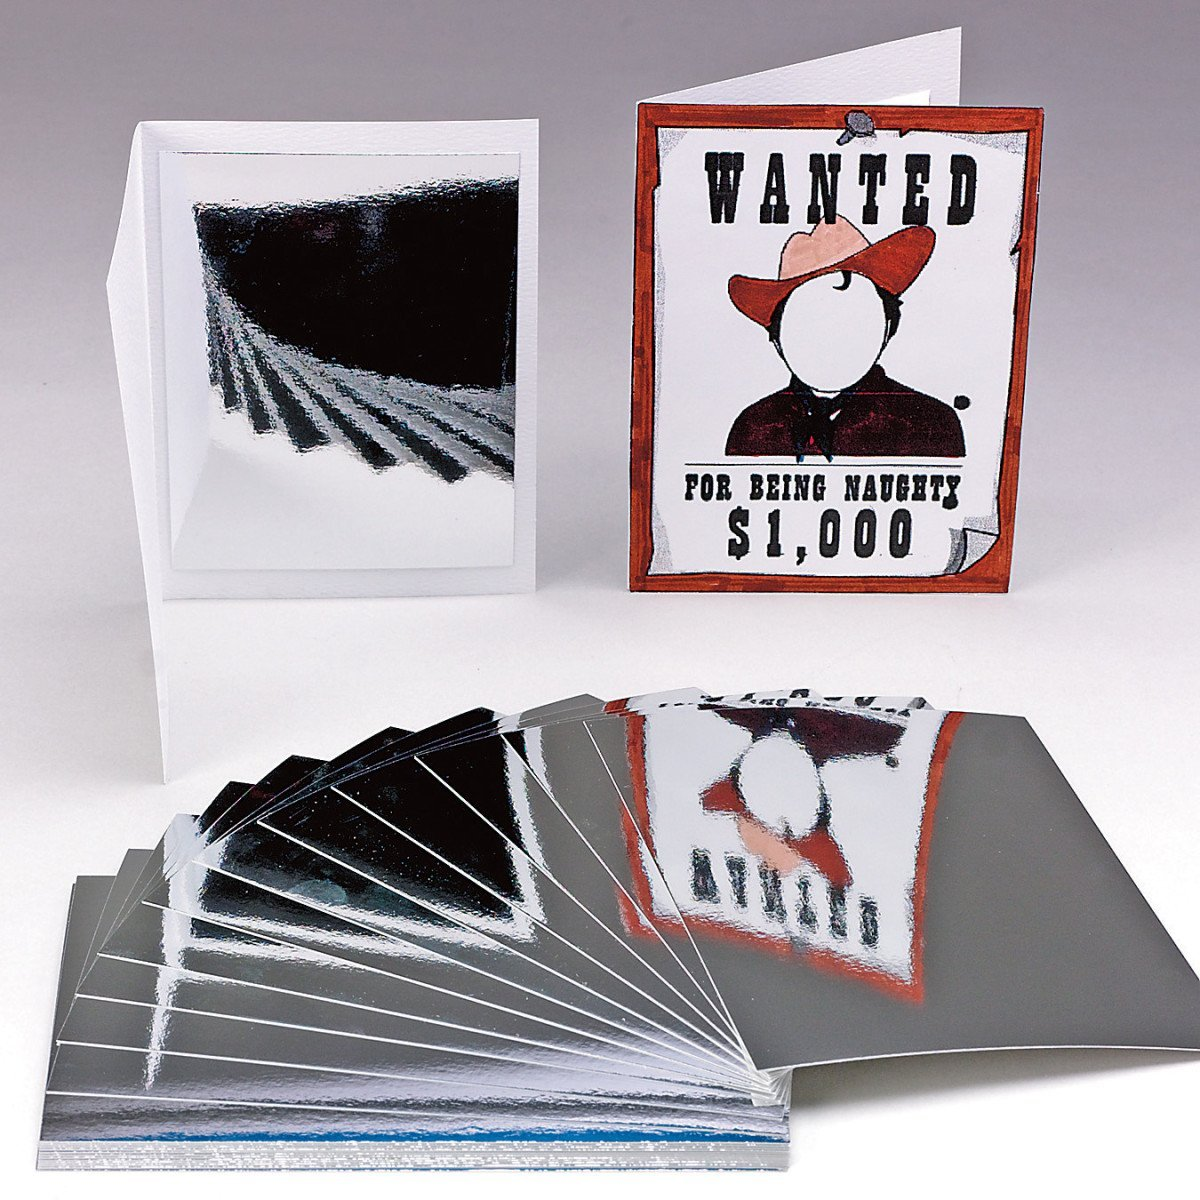 HYGLOSS PRODUCTS INC. MIRROR BOARD 5 X 7 25 SHEETS (Set of 6)